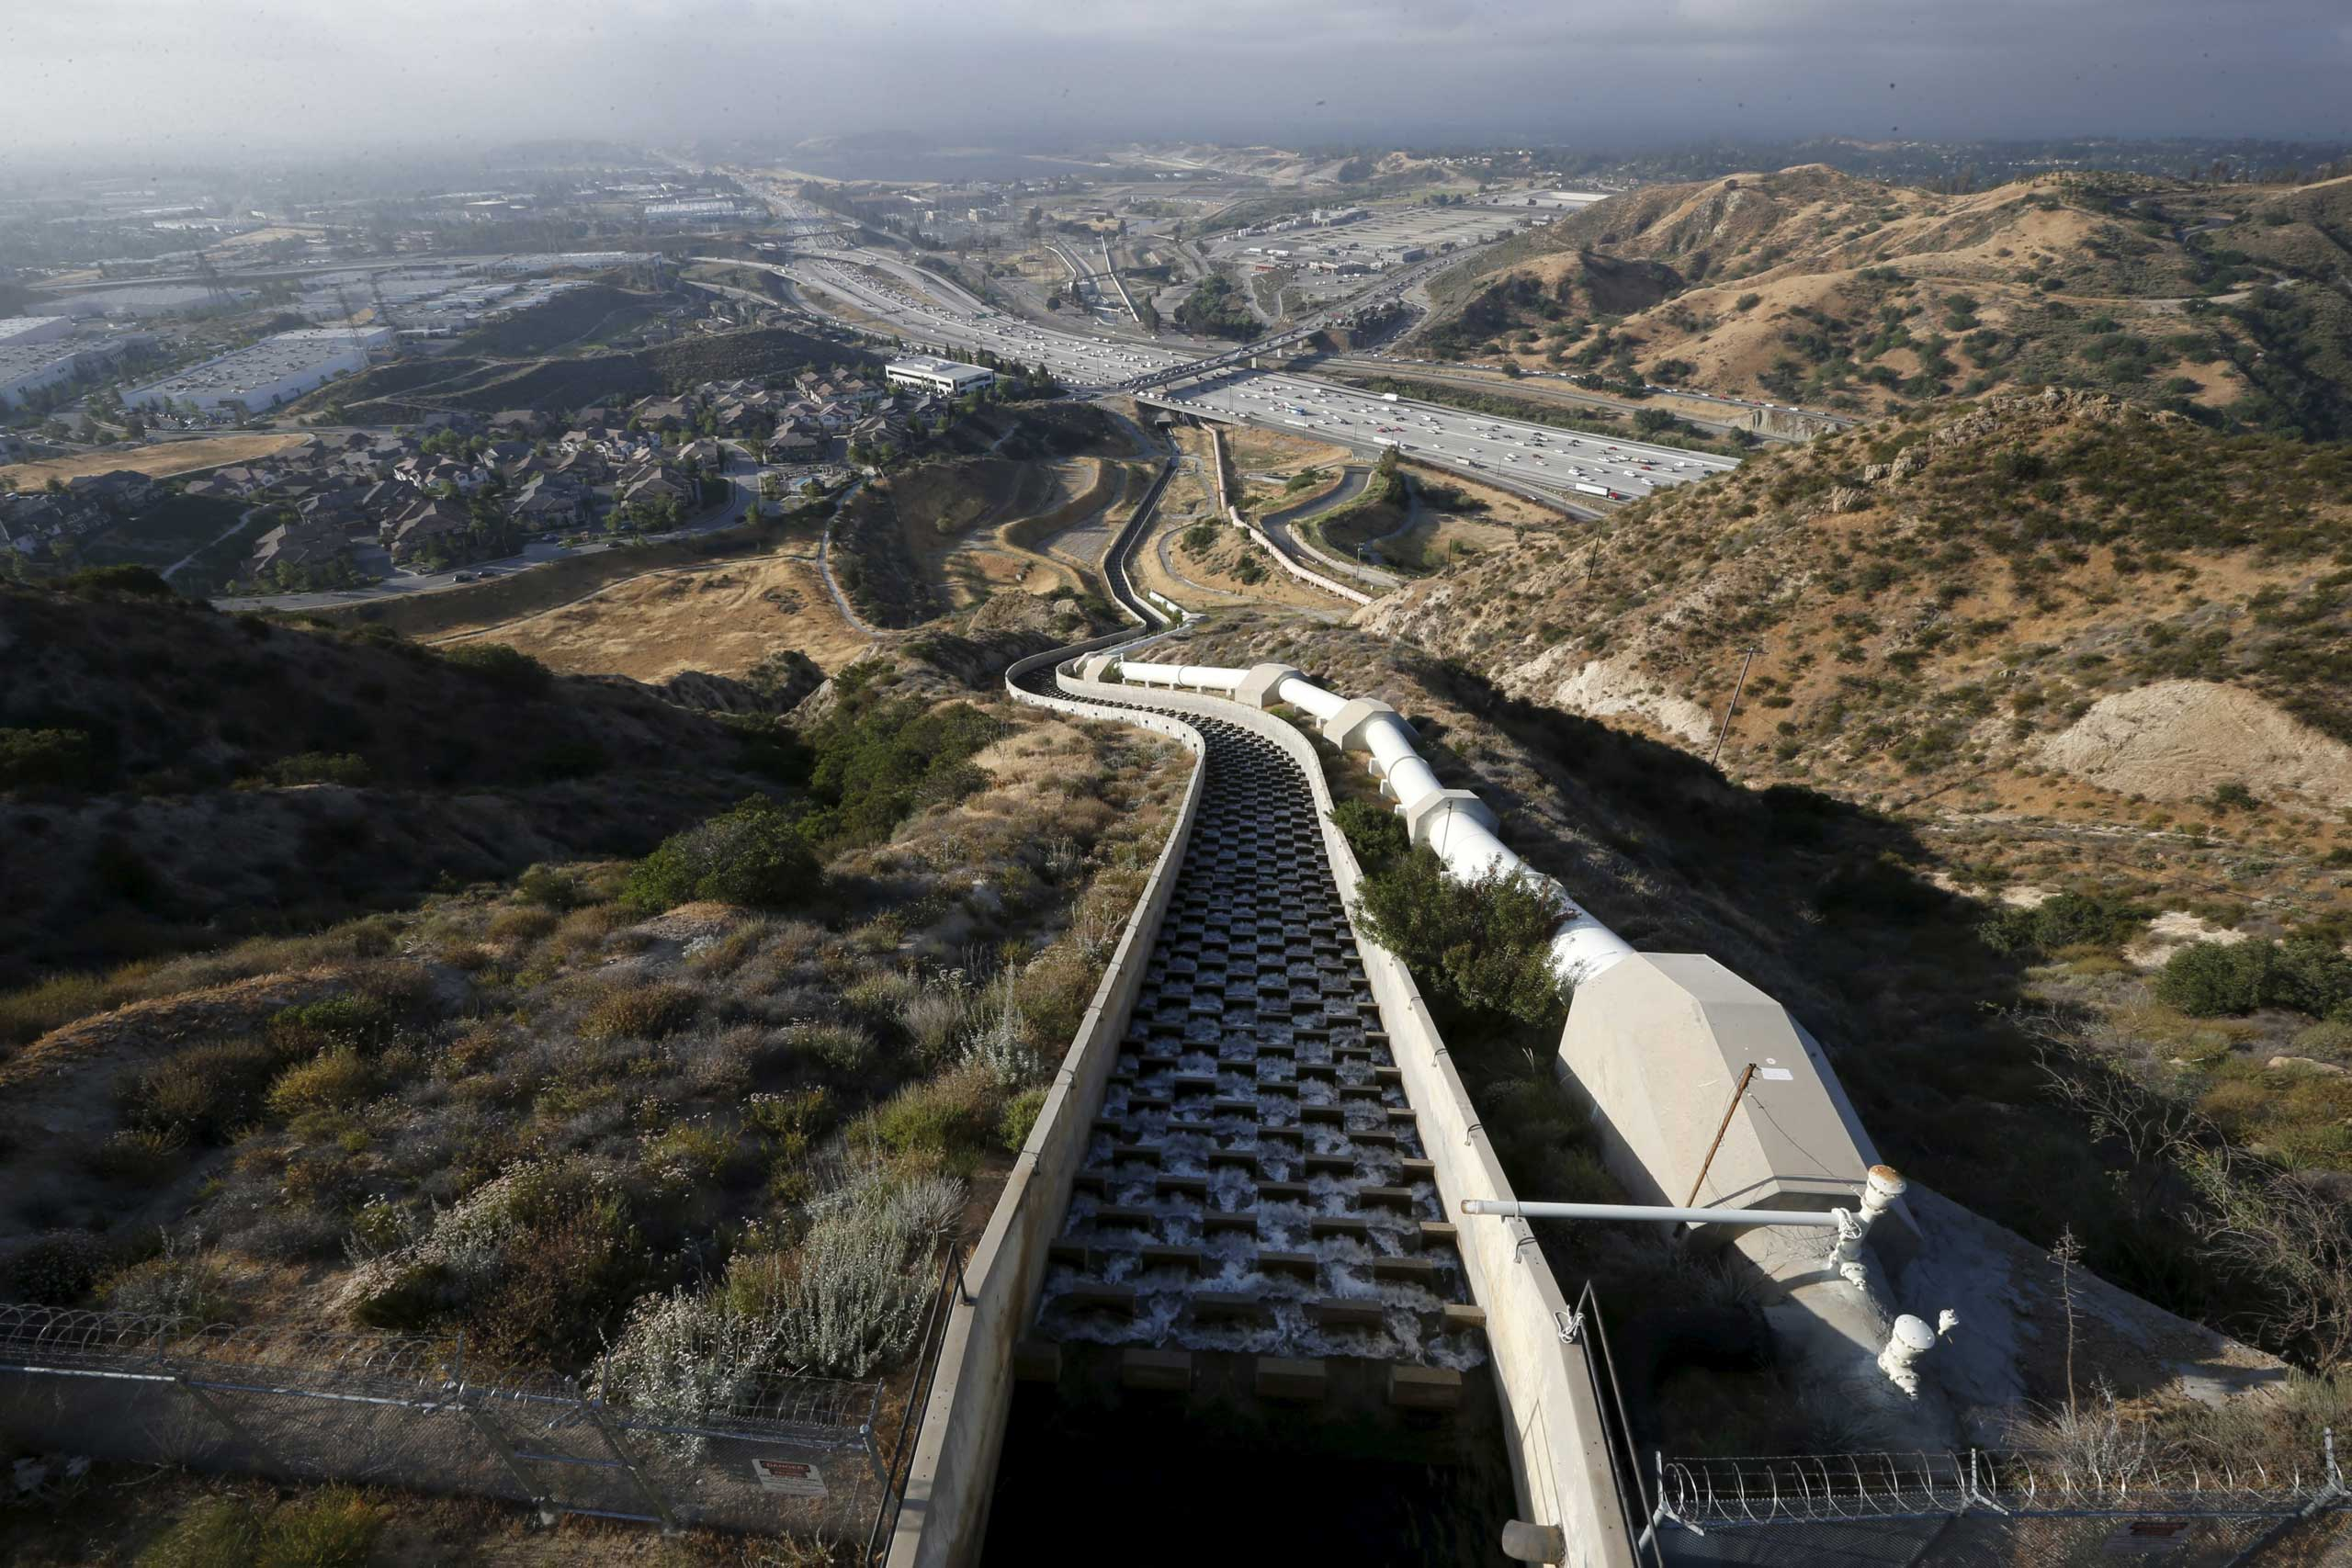 The Los Angeles Aqueduct Cascades, which bring water 223 miles from the Owens River in the eastern Sierra Nevada mountains, and 137 miles from the Haiwee Reservoir, are a major source of water for Los Angeles. Seen here in Sylmar, Calif. on May 4, 2015.